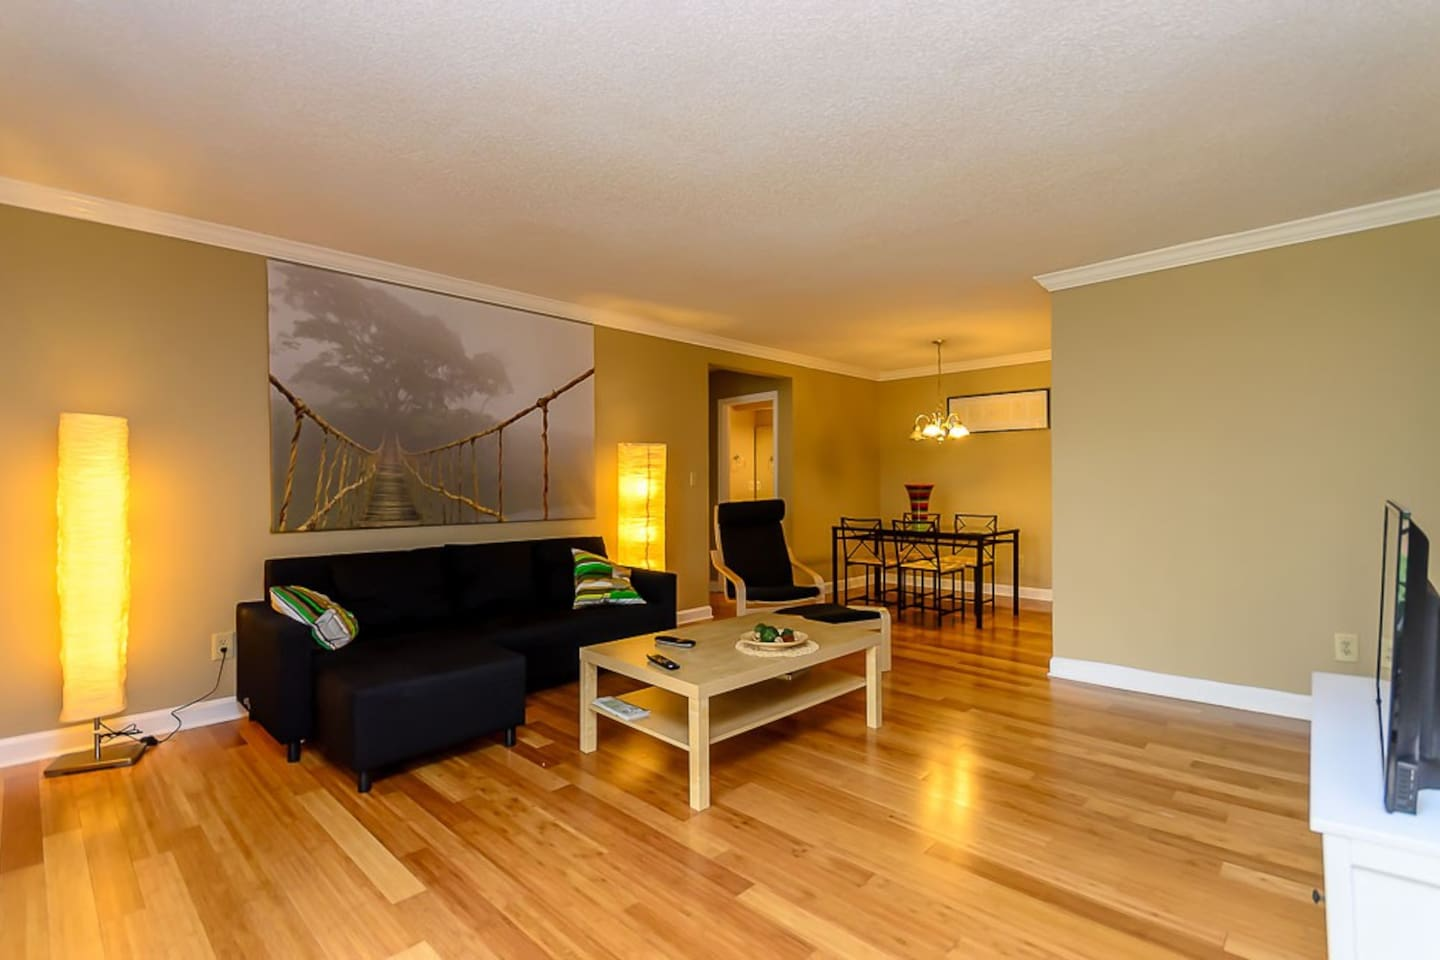 Stunning and cozy living rom with hardwood floors